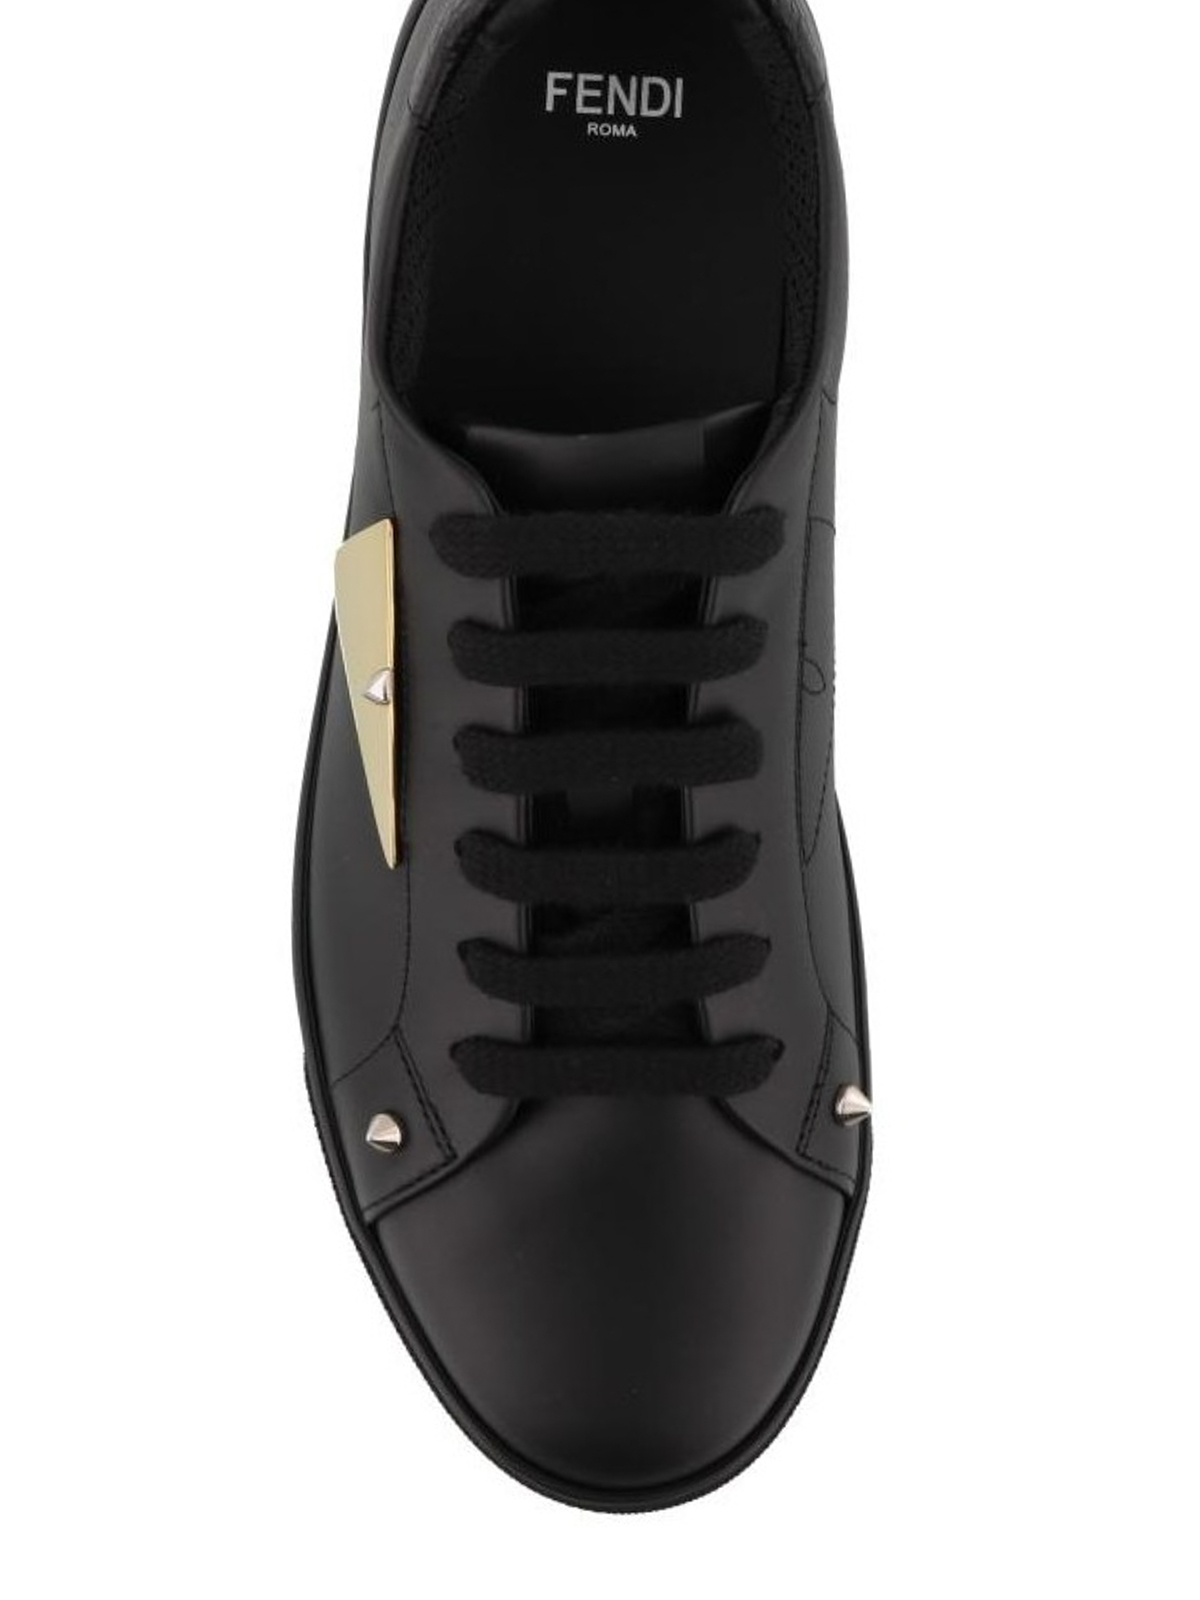 23c53421cb Fendi - Bag Bugs studded black leather sneakers - trainers ...